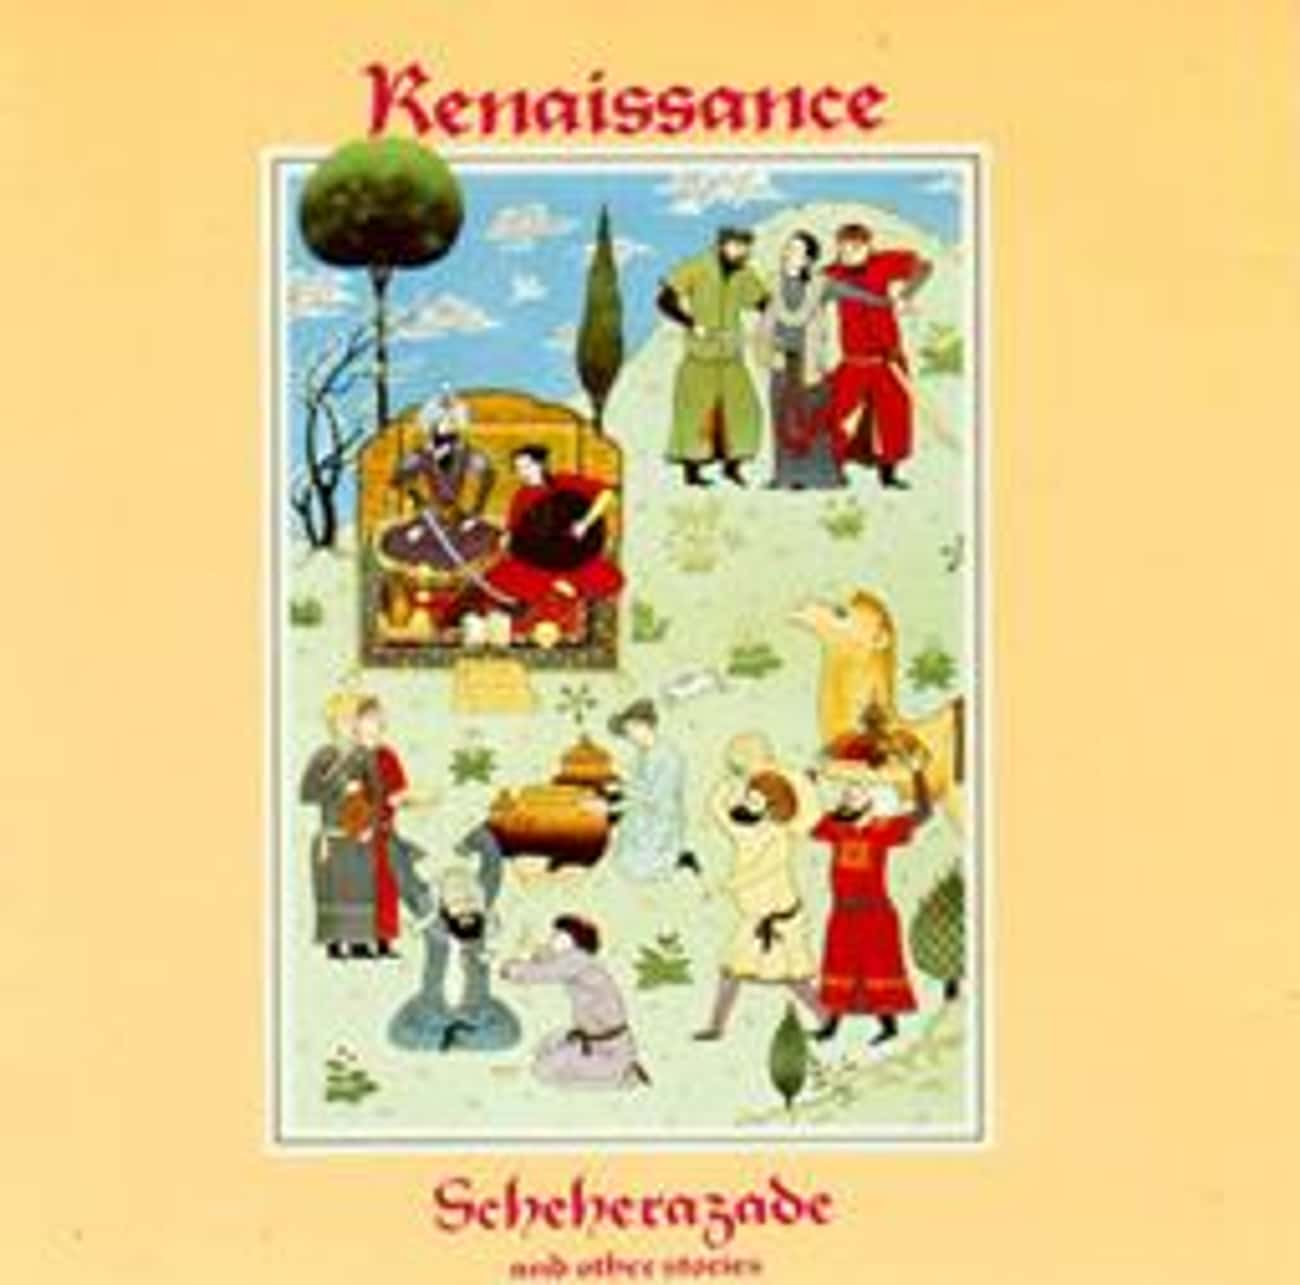 Scheherazade and Other Stories is listed (or ranked) 2 on the list The Best Renaissance Albums of All Time